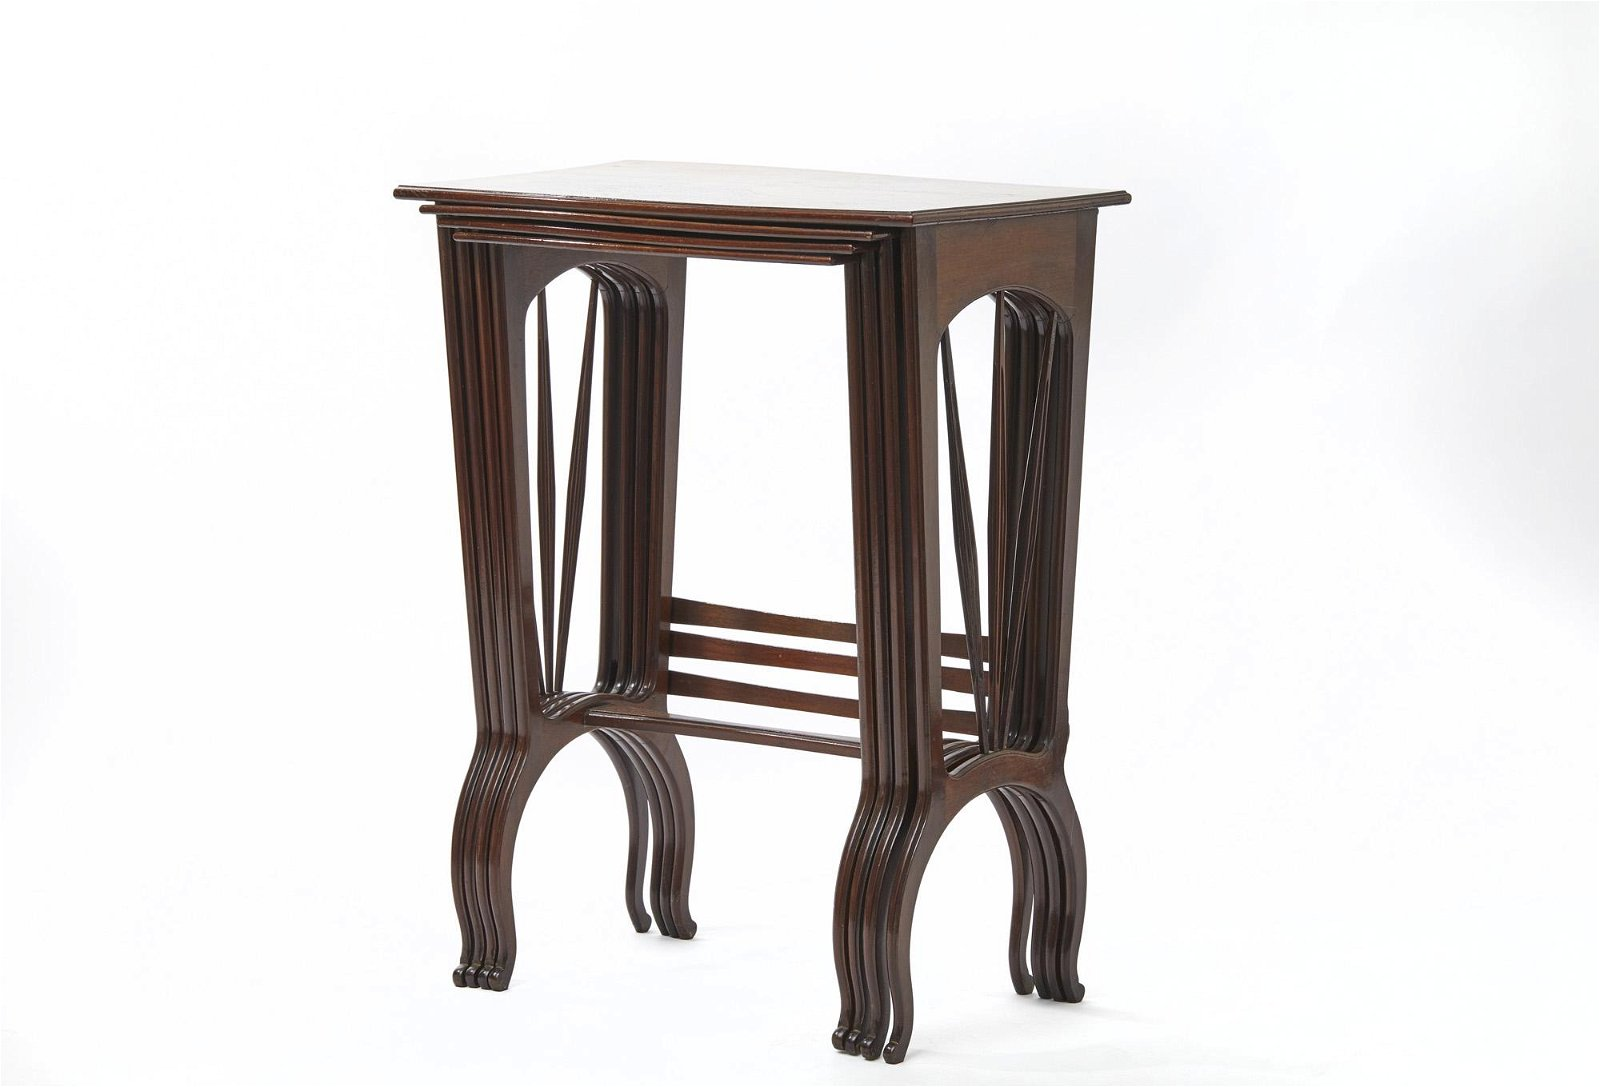 Set of 4 nesting coffee tables in exotic wood with